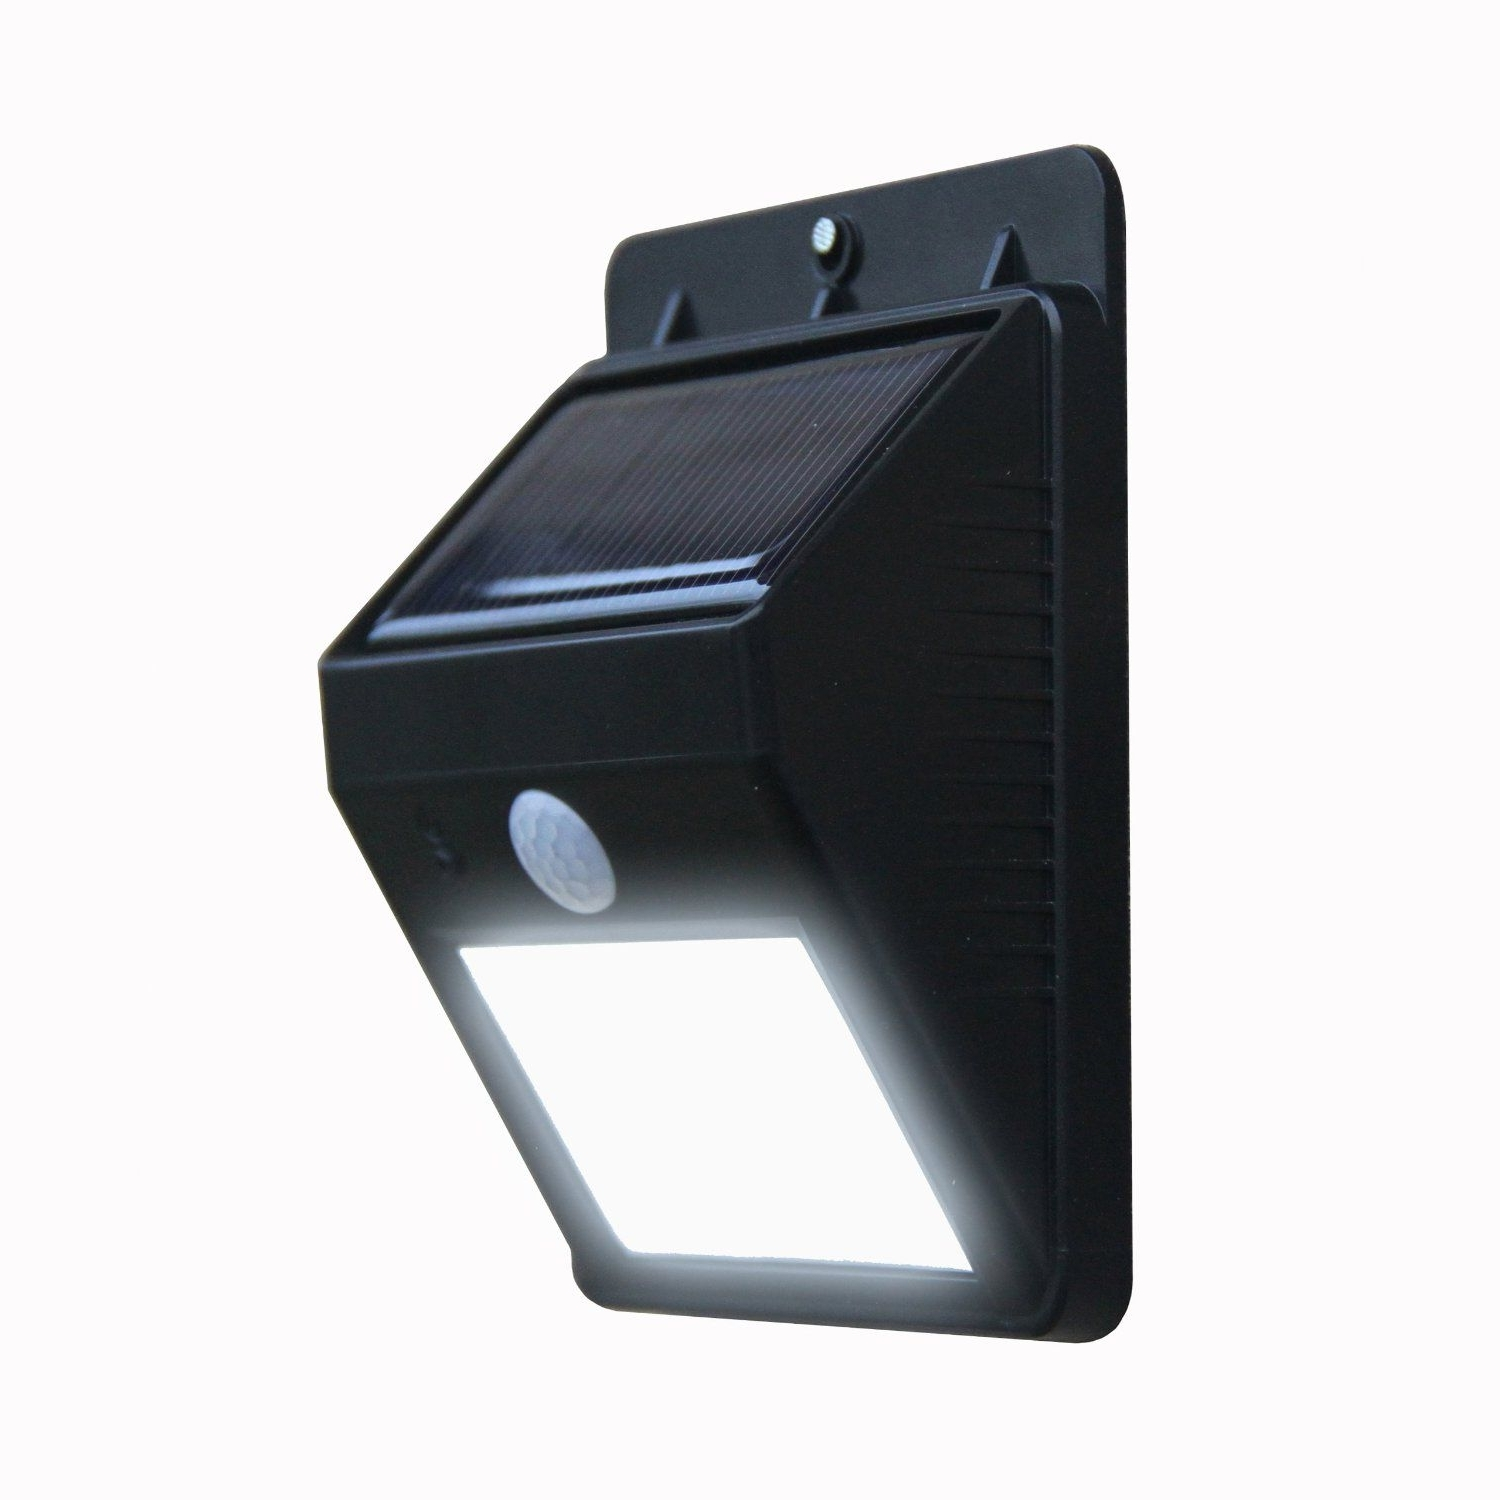 Modern Outdoor Wall Light Fixtures With Motion Sensor For Industrial Intended For Fashionable Battery Operated Outdoor Wall Lights (View 14 of 20)